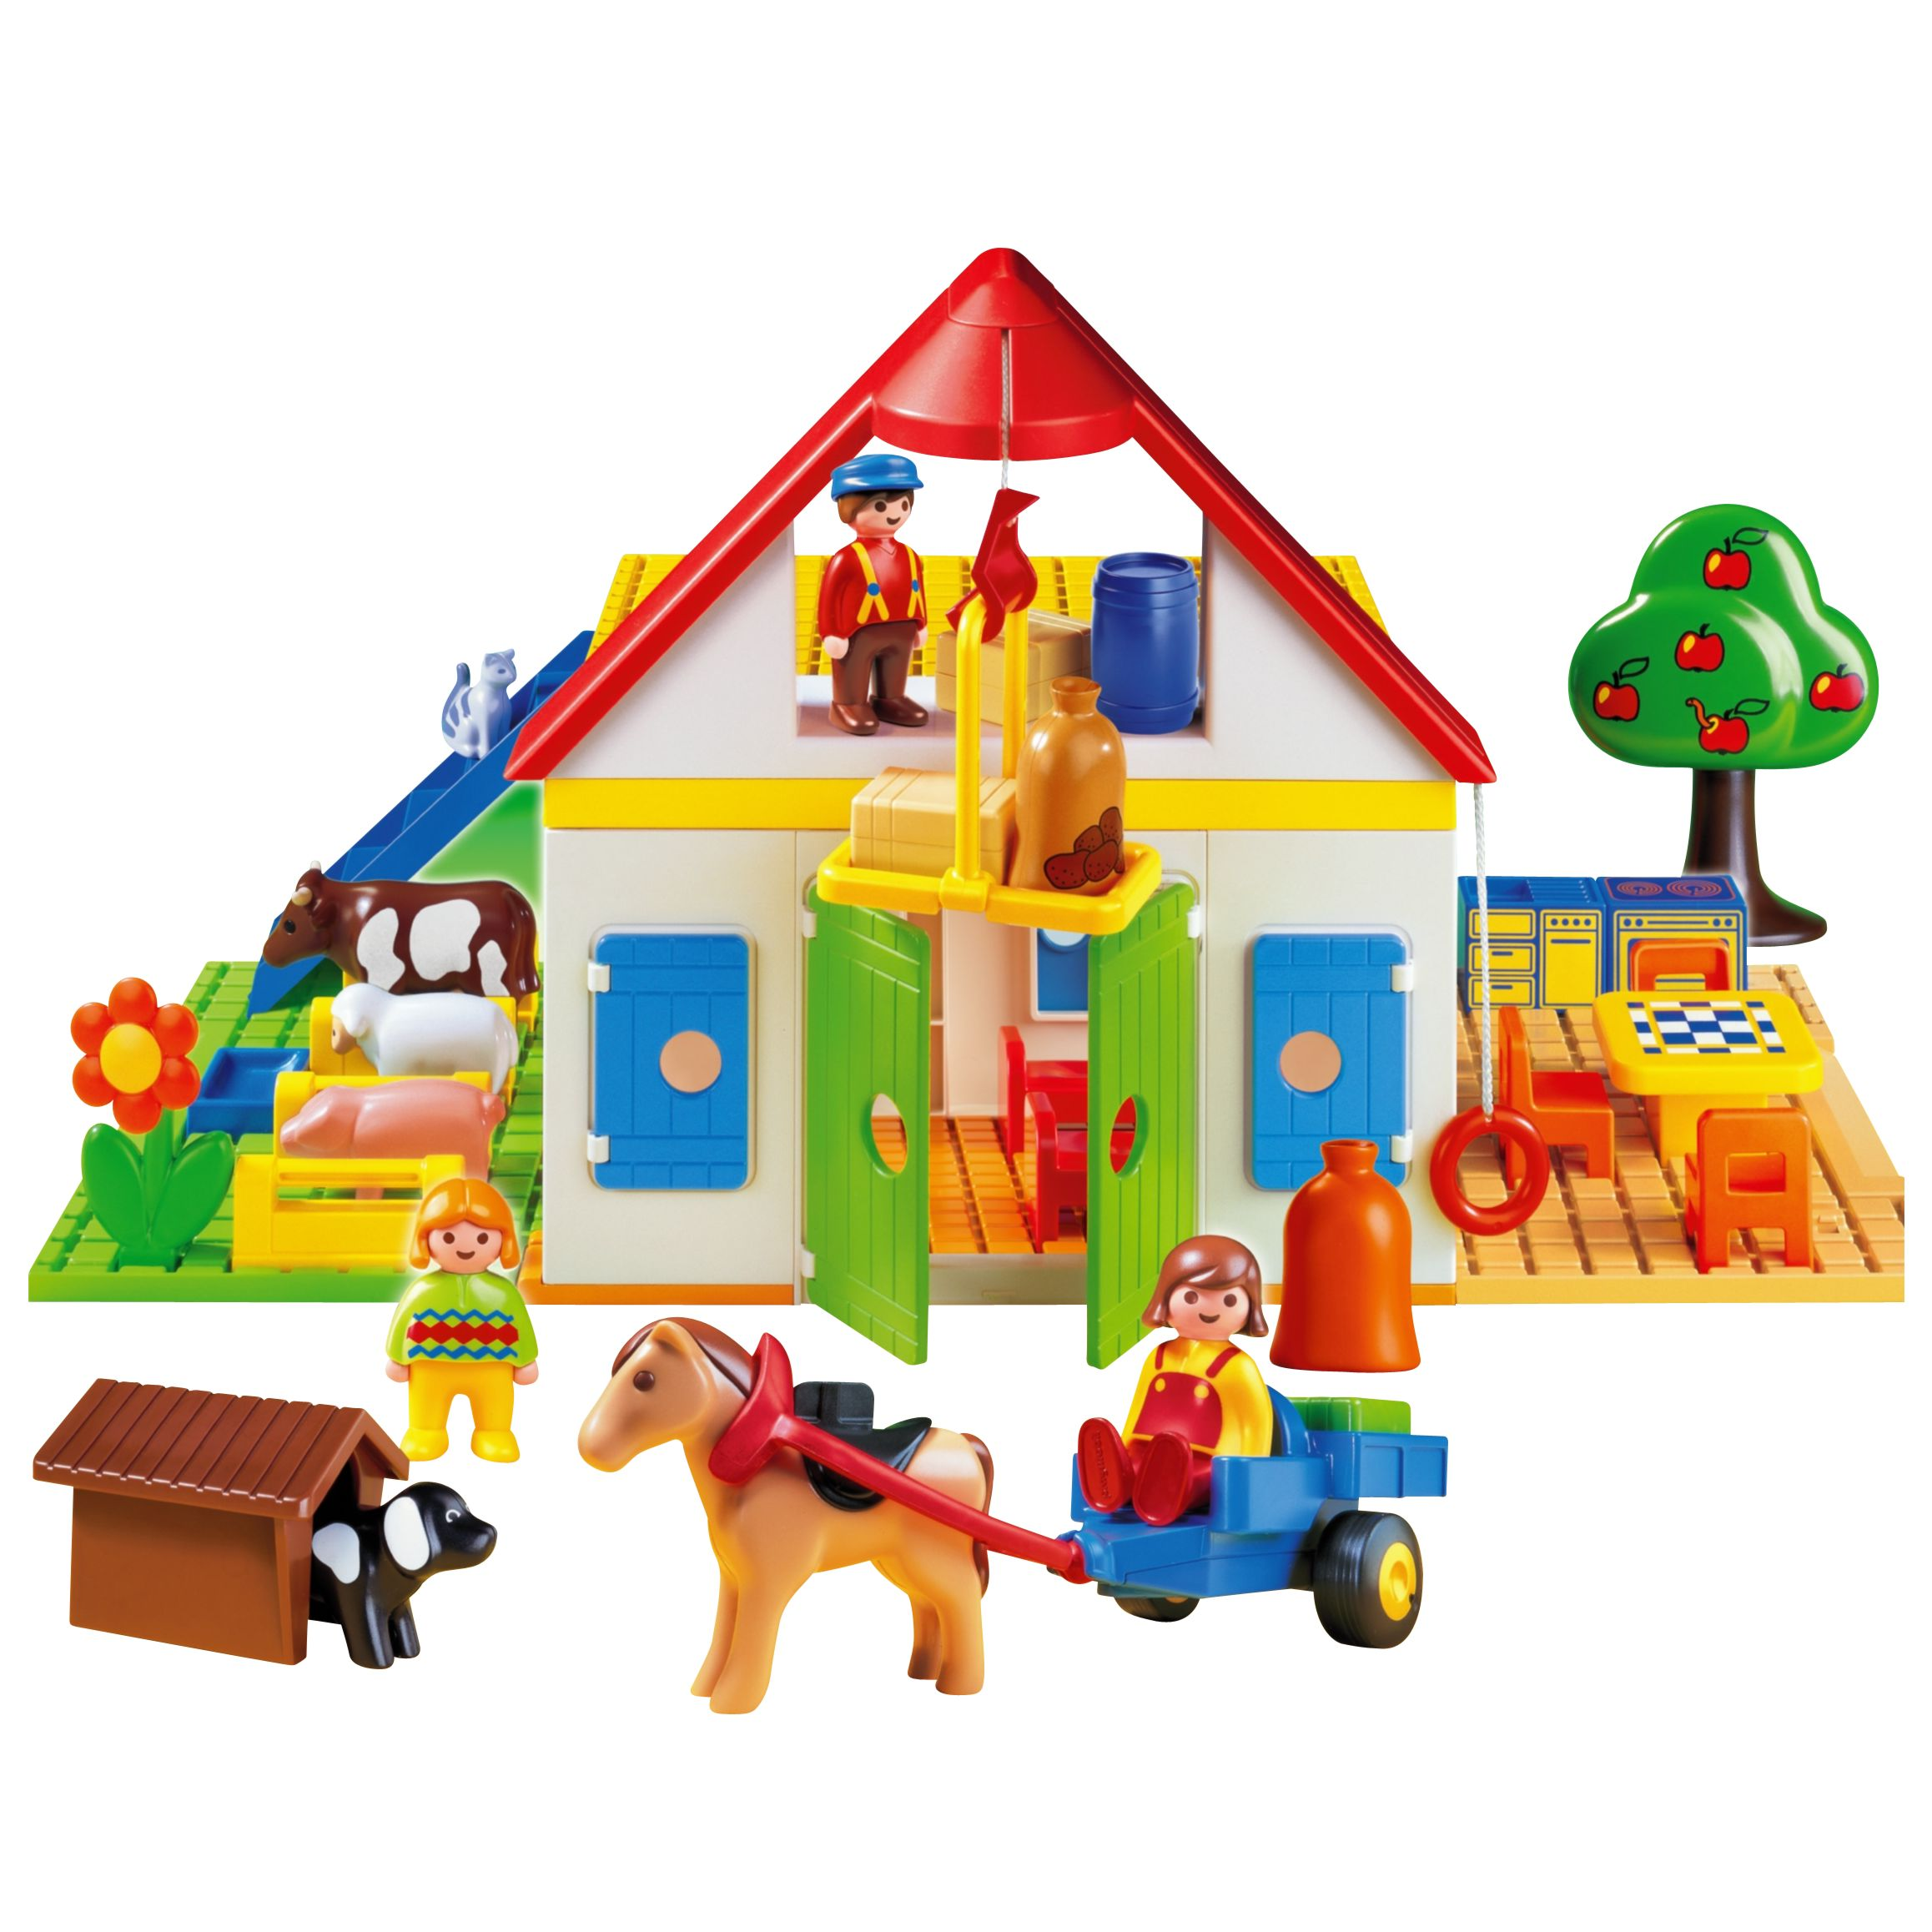 Click here for Playmobil 123 Farm